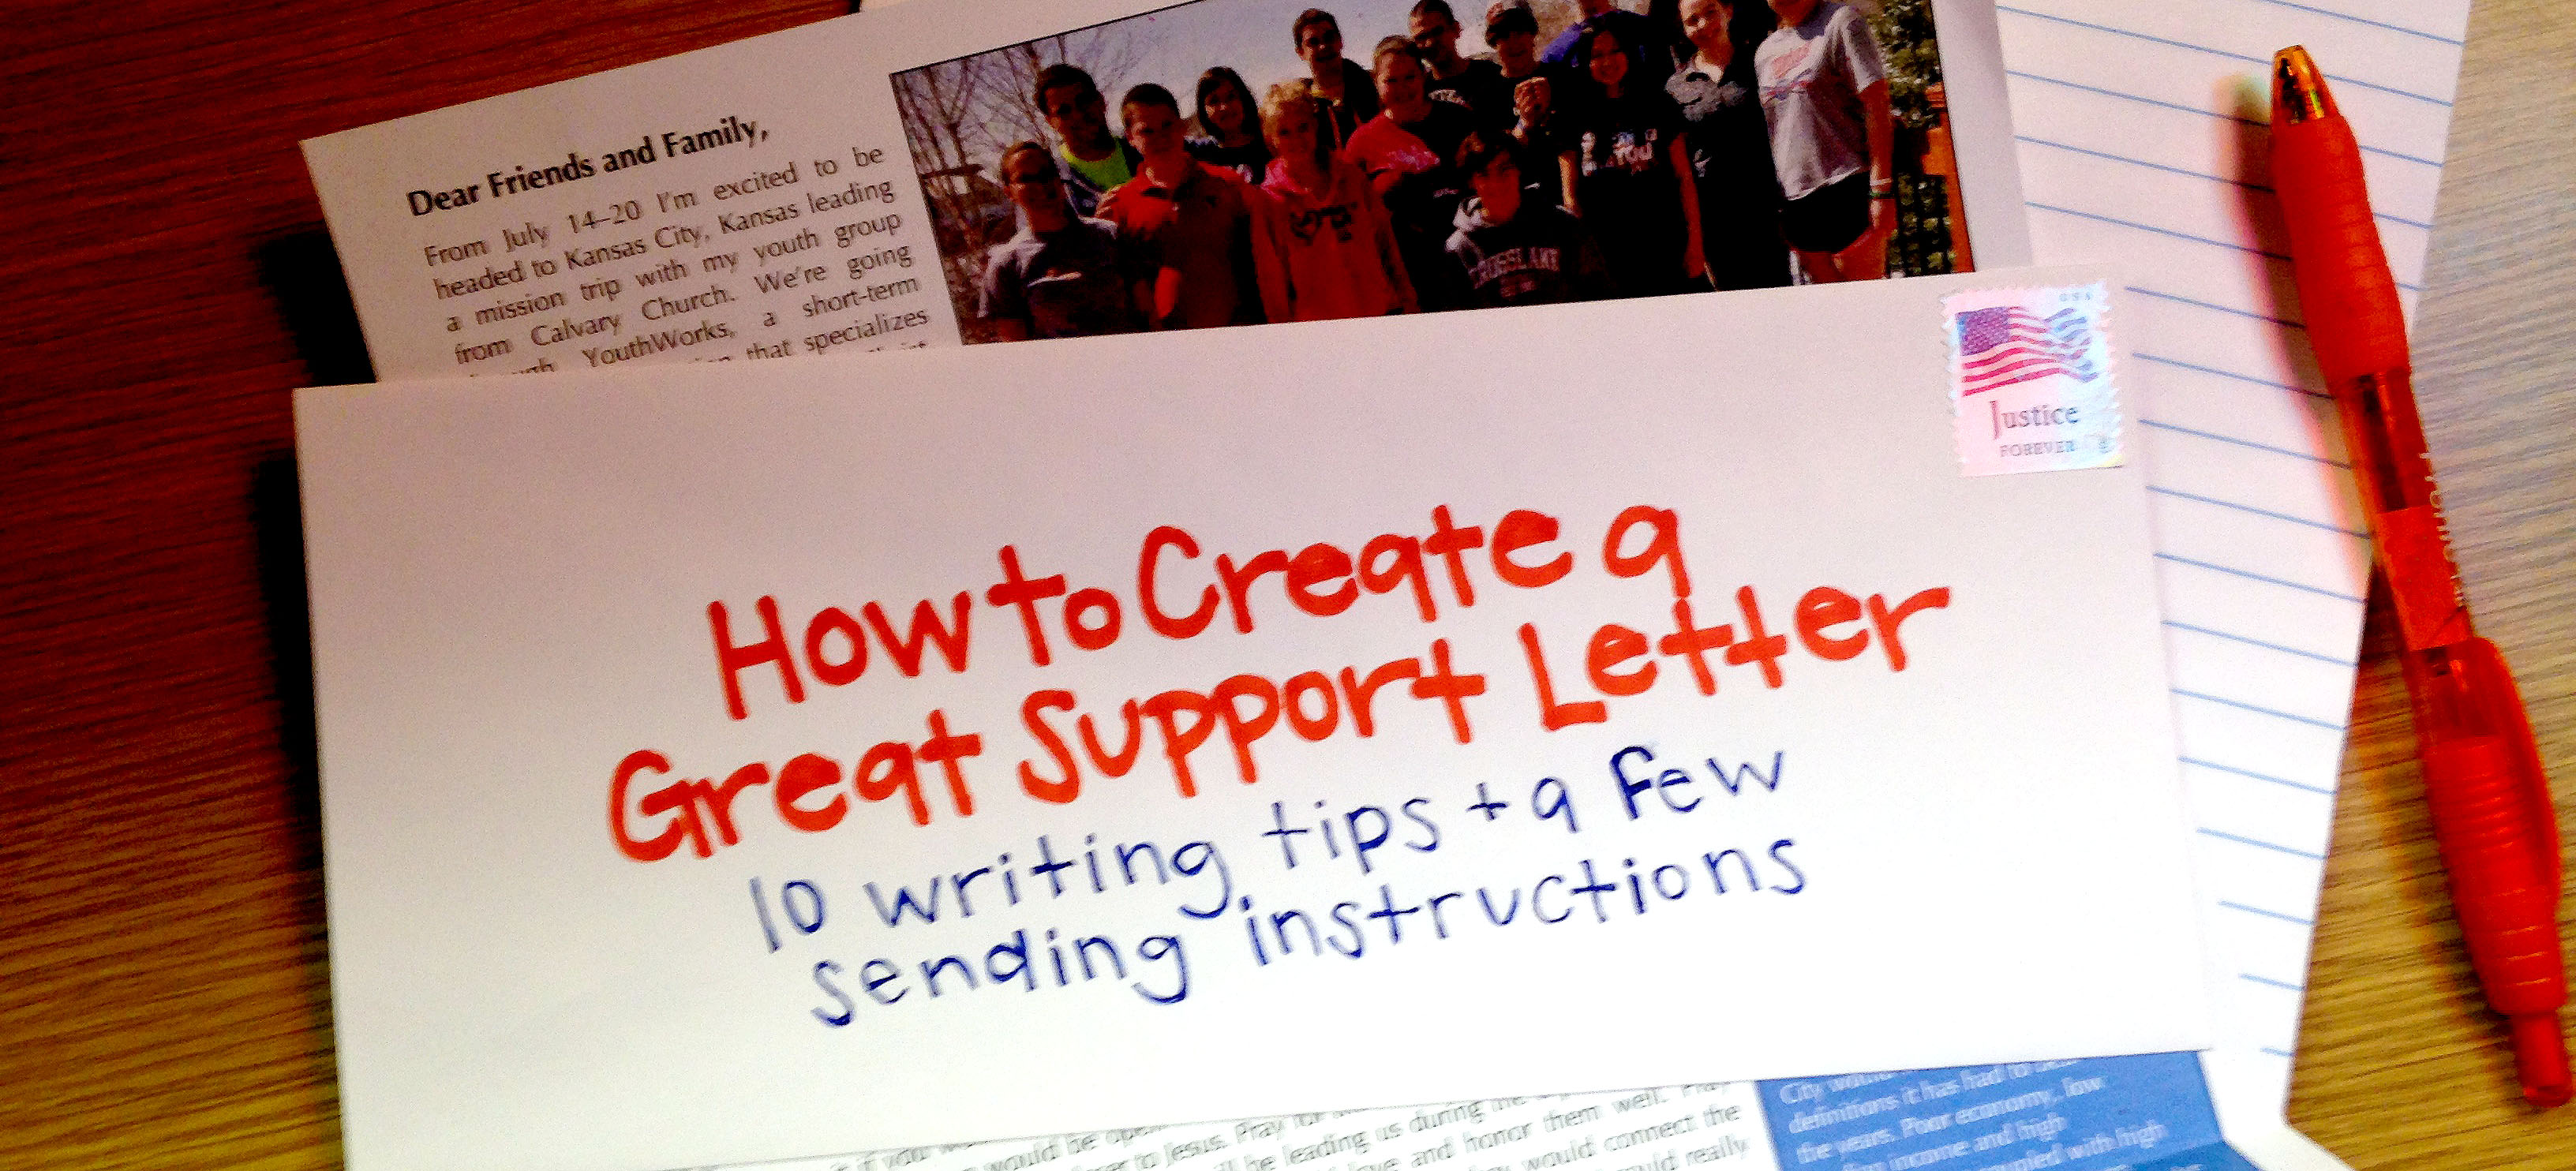 How to create a great support letter youthworks how to create a great support letter stopboris